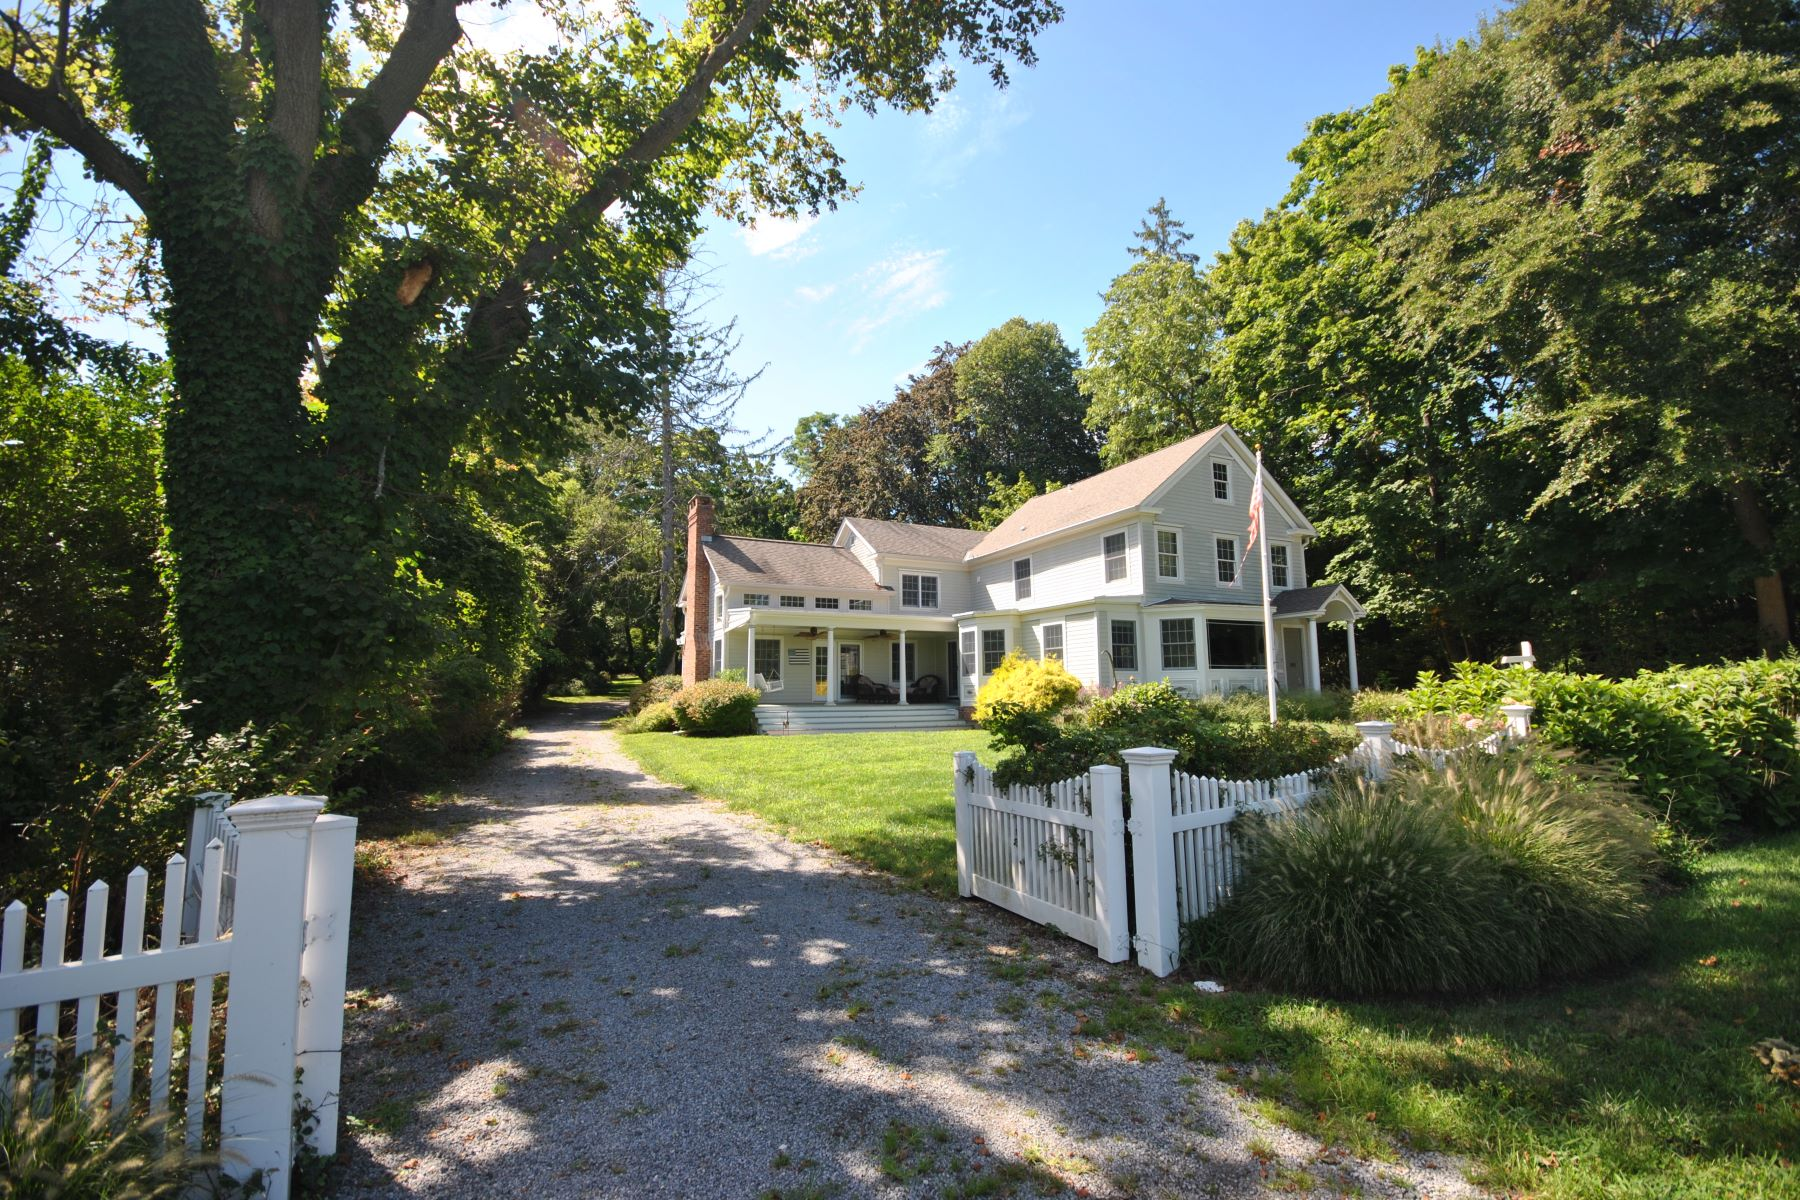 Single Family Home for Sale at 96 Old Field Rd 96 Old Field Rd Old Field, New York, 11733 United States